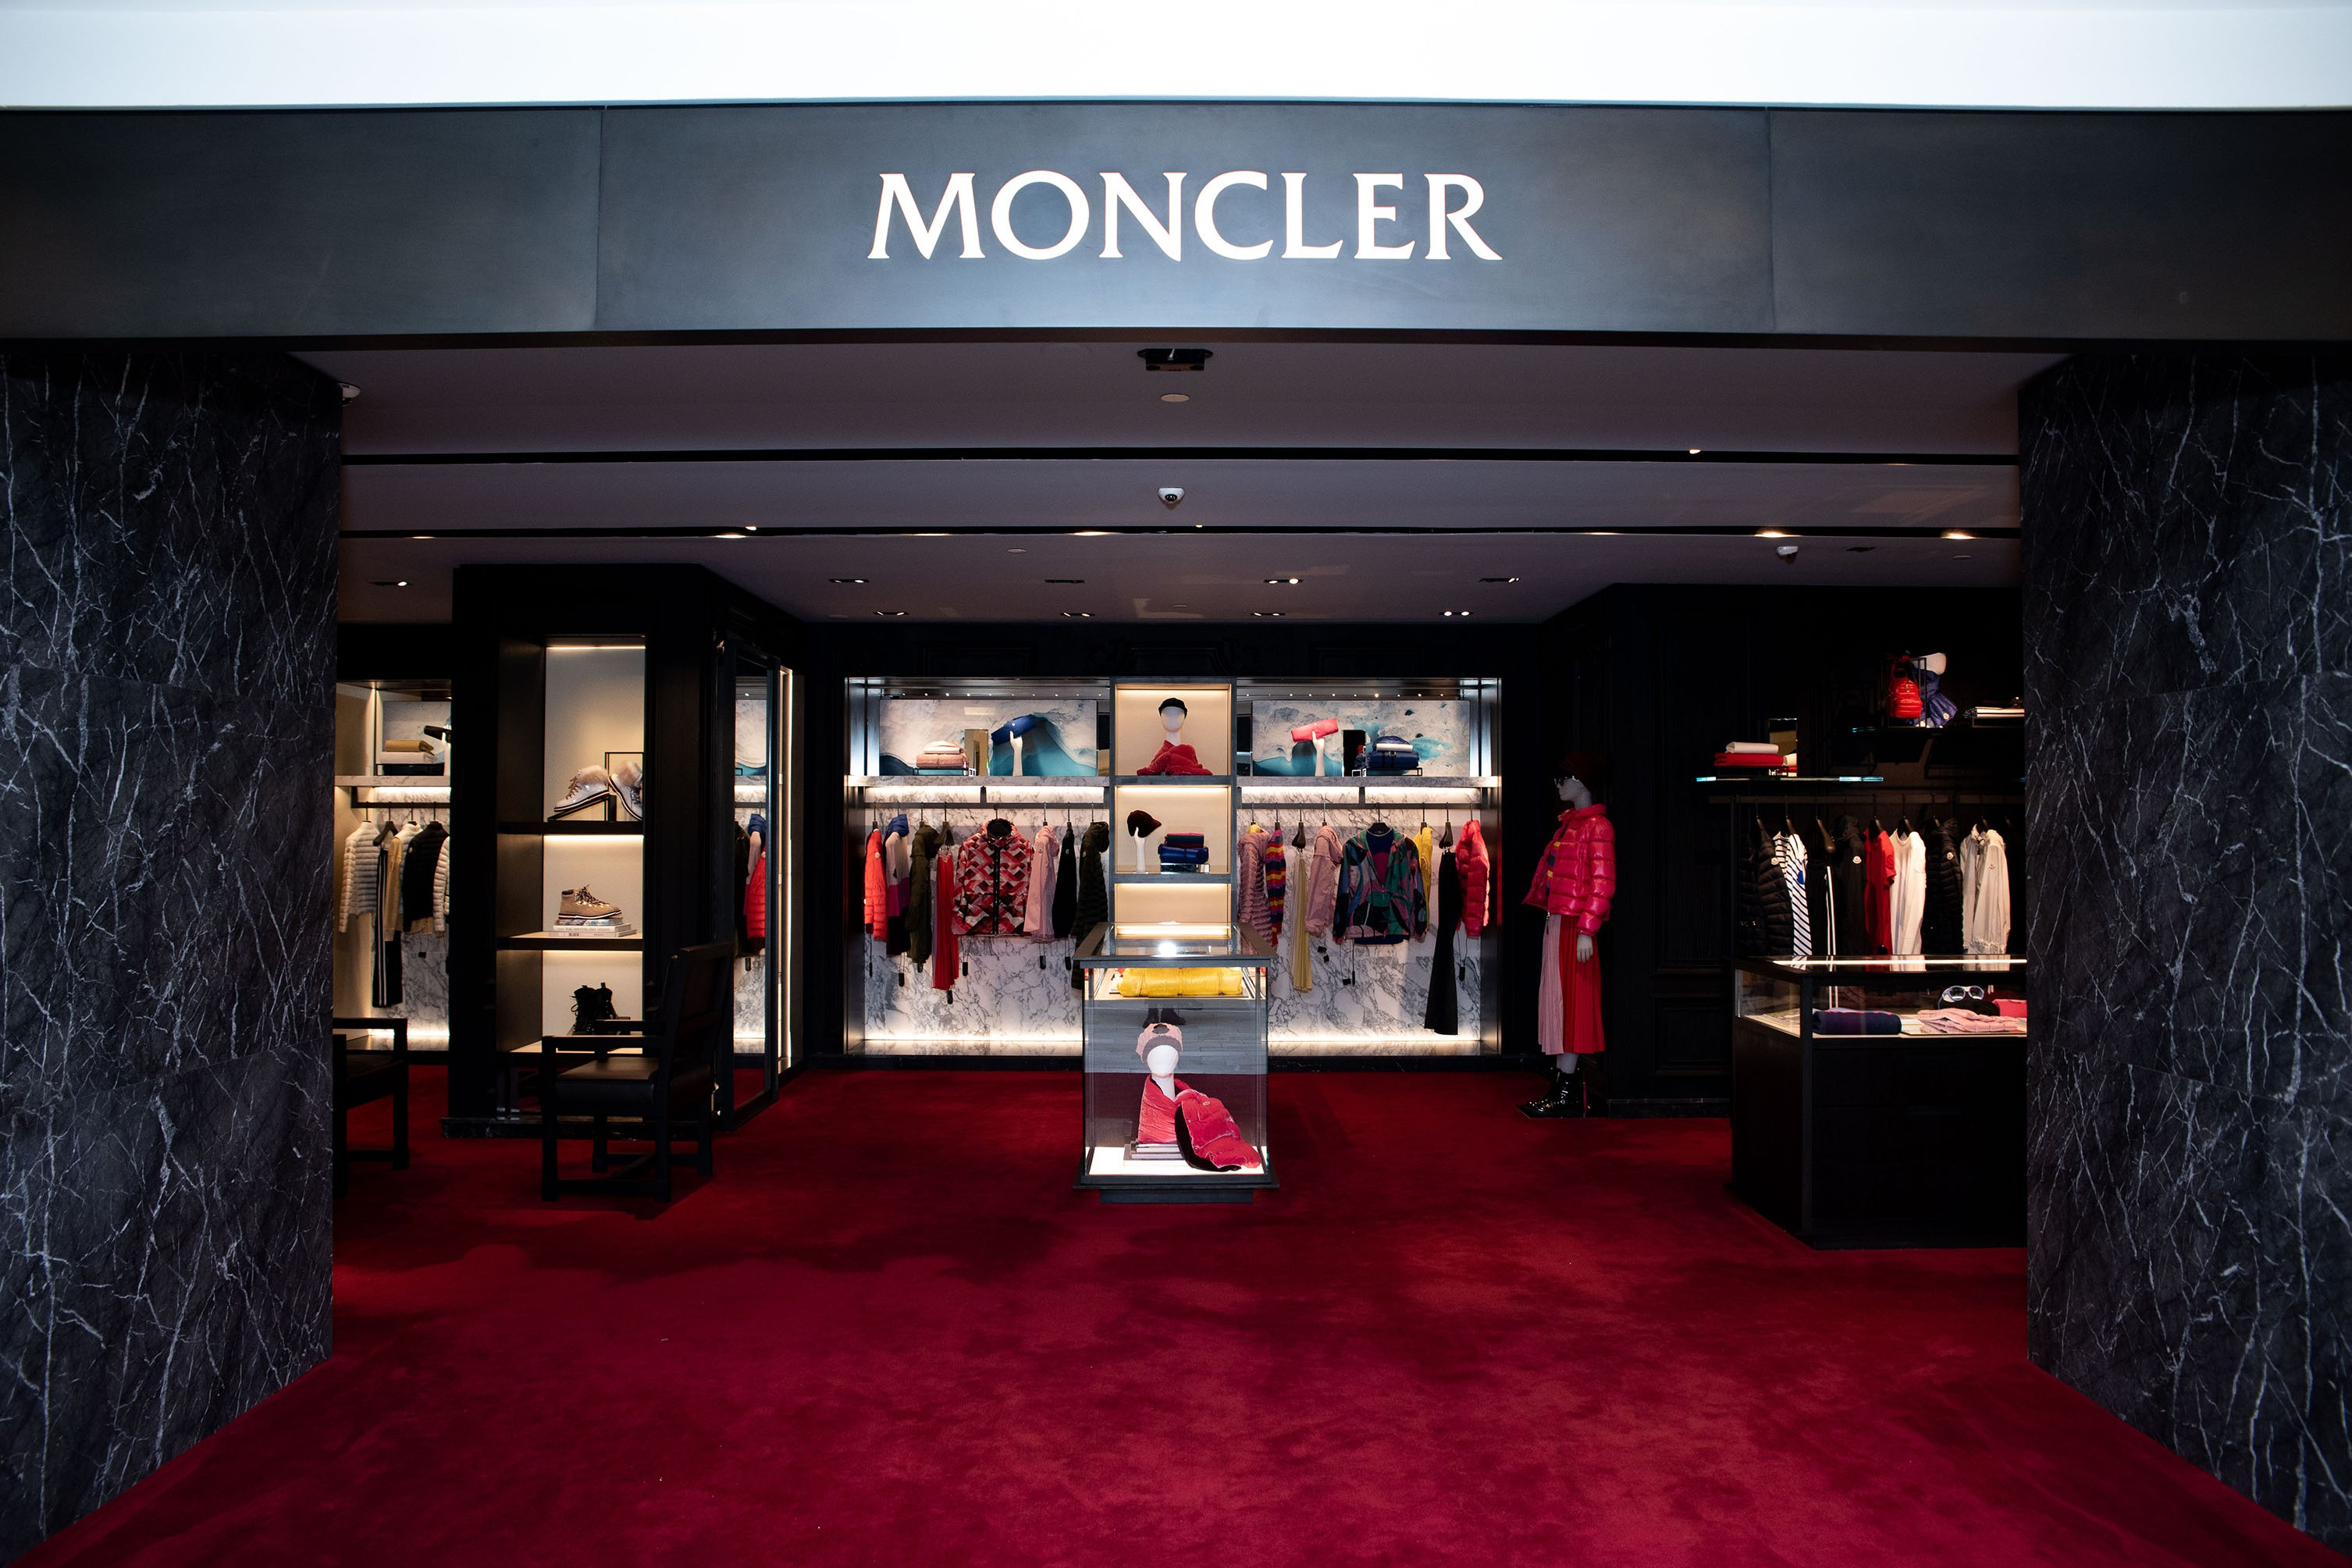 The Moncler shop on the fourth floor.